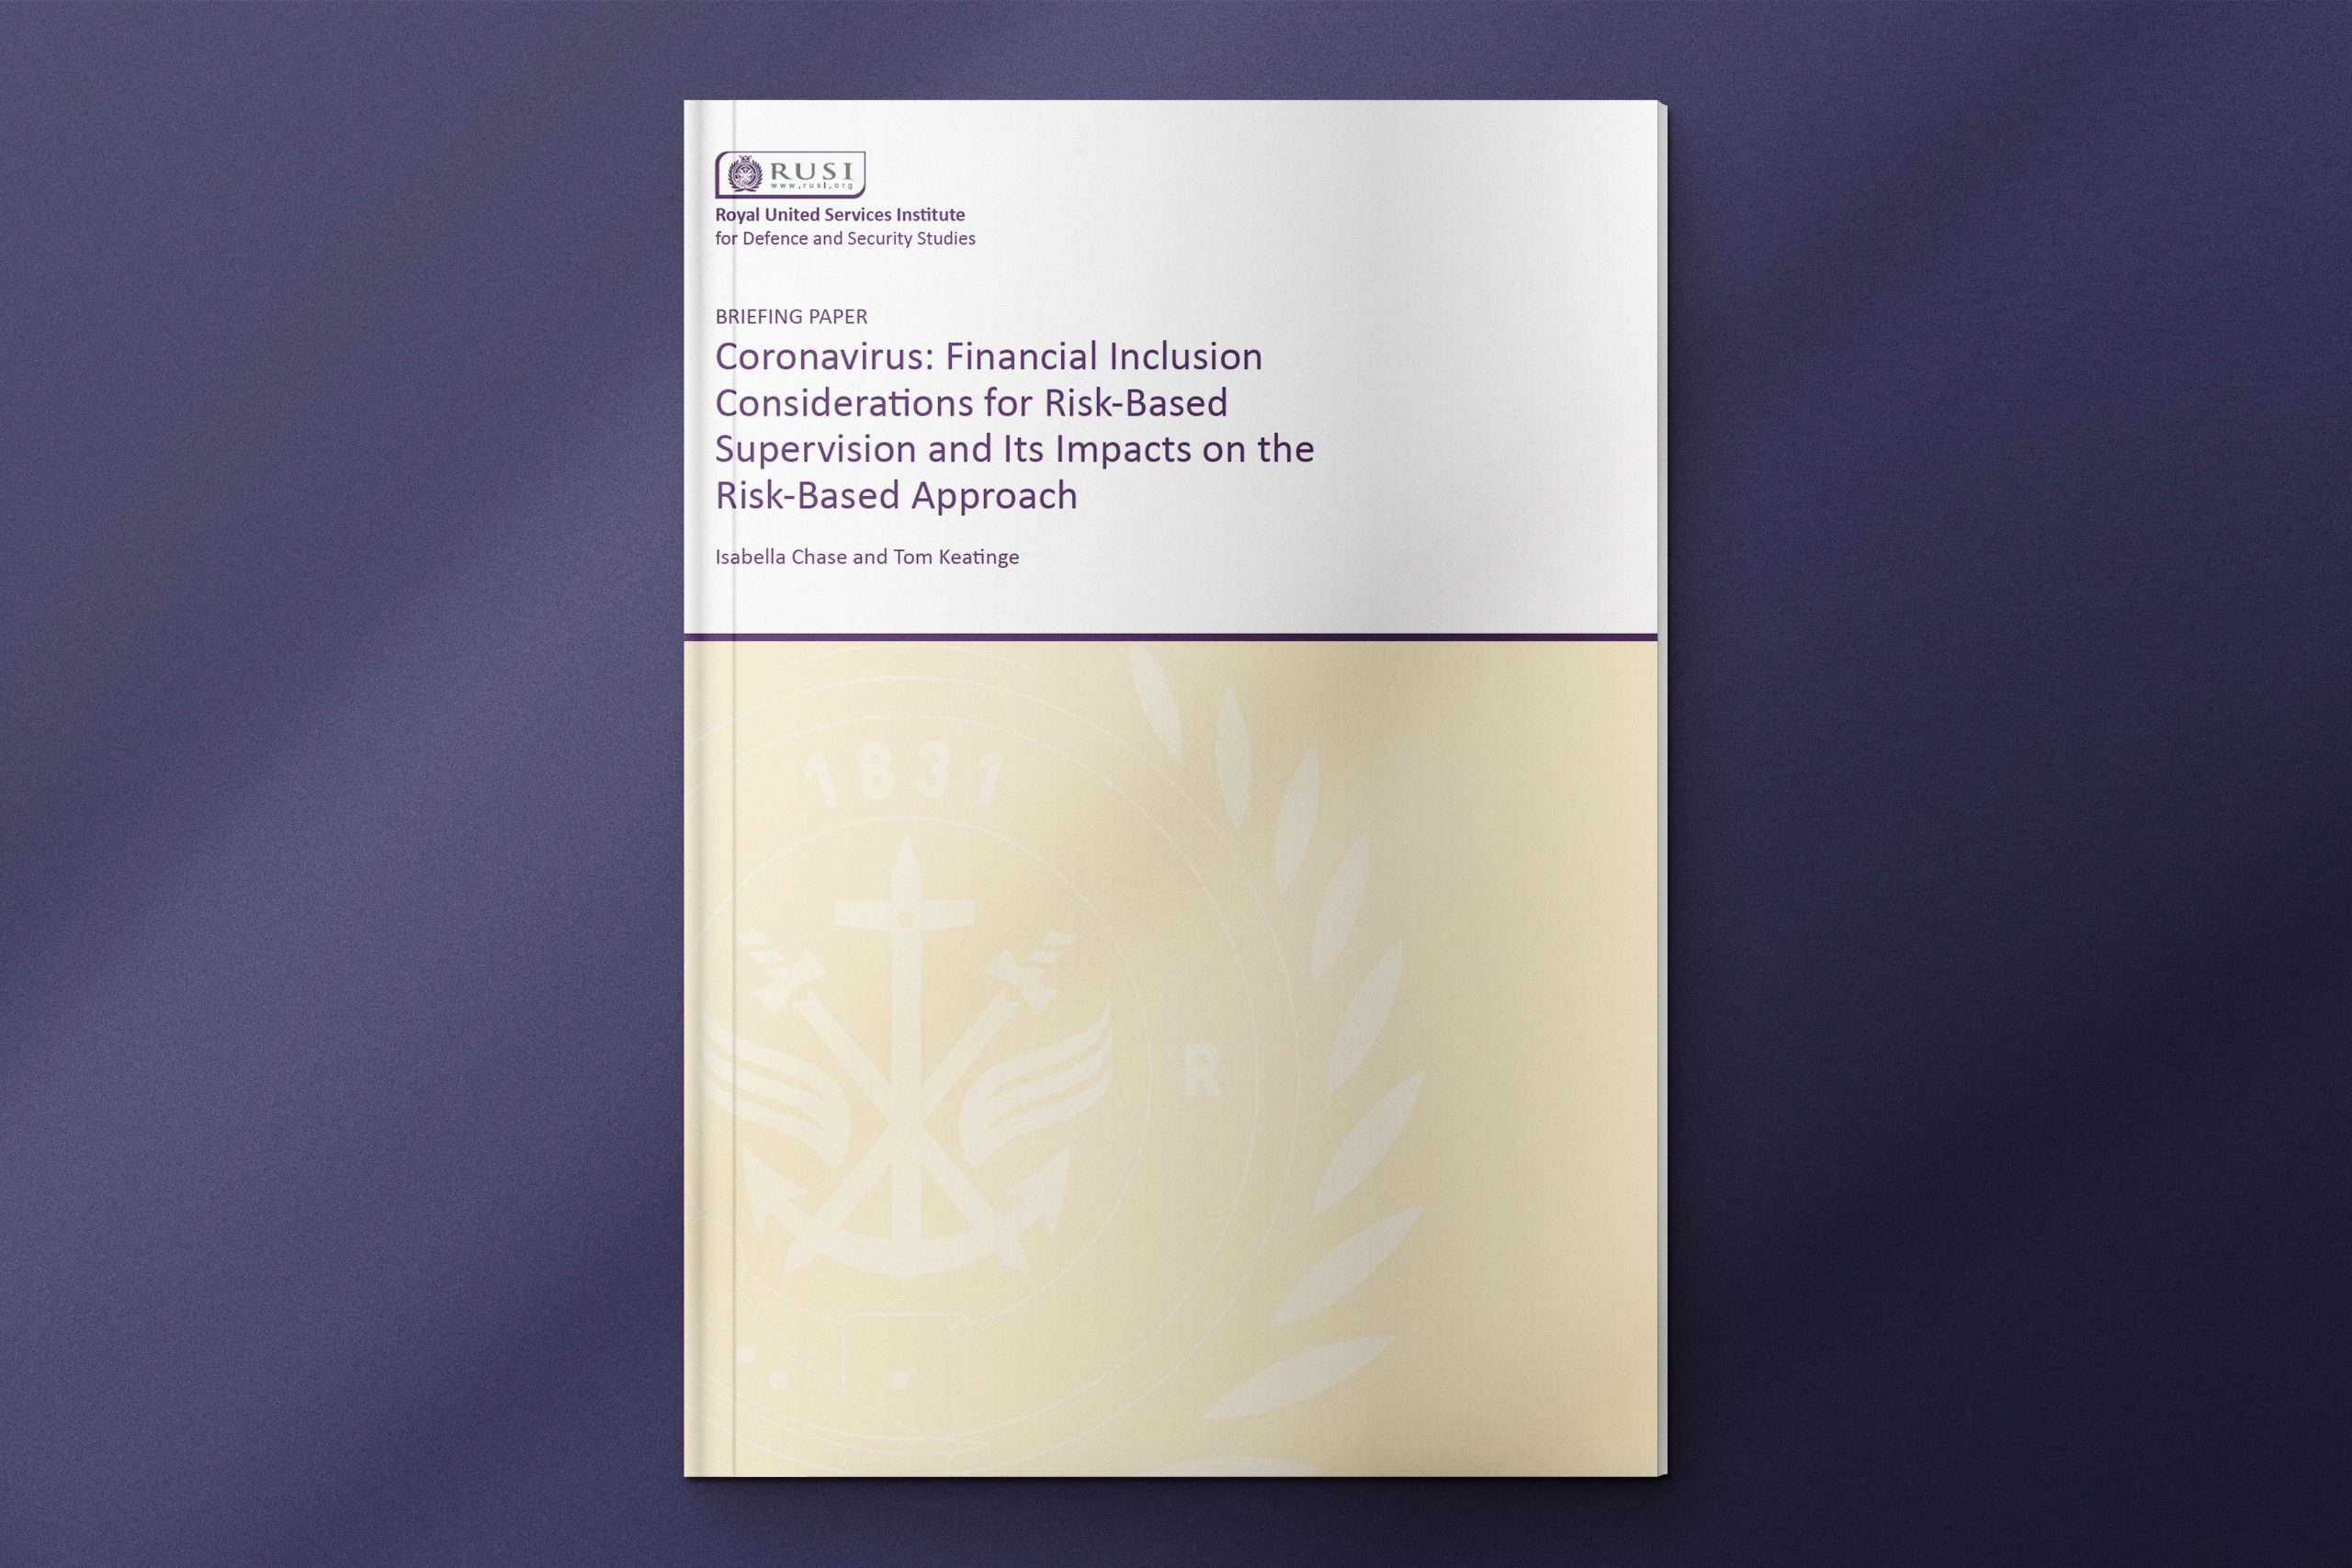 Coronavirus: Financial Inclusion Considerations for Risk-Based Supervision and Its Impacts on the Risk-Based Approach